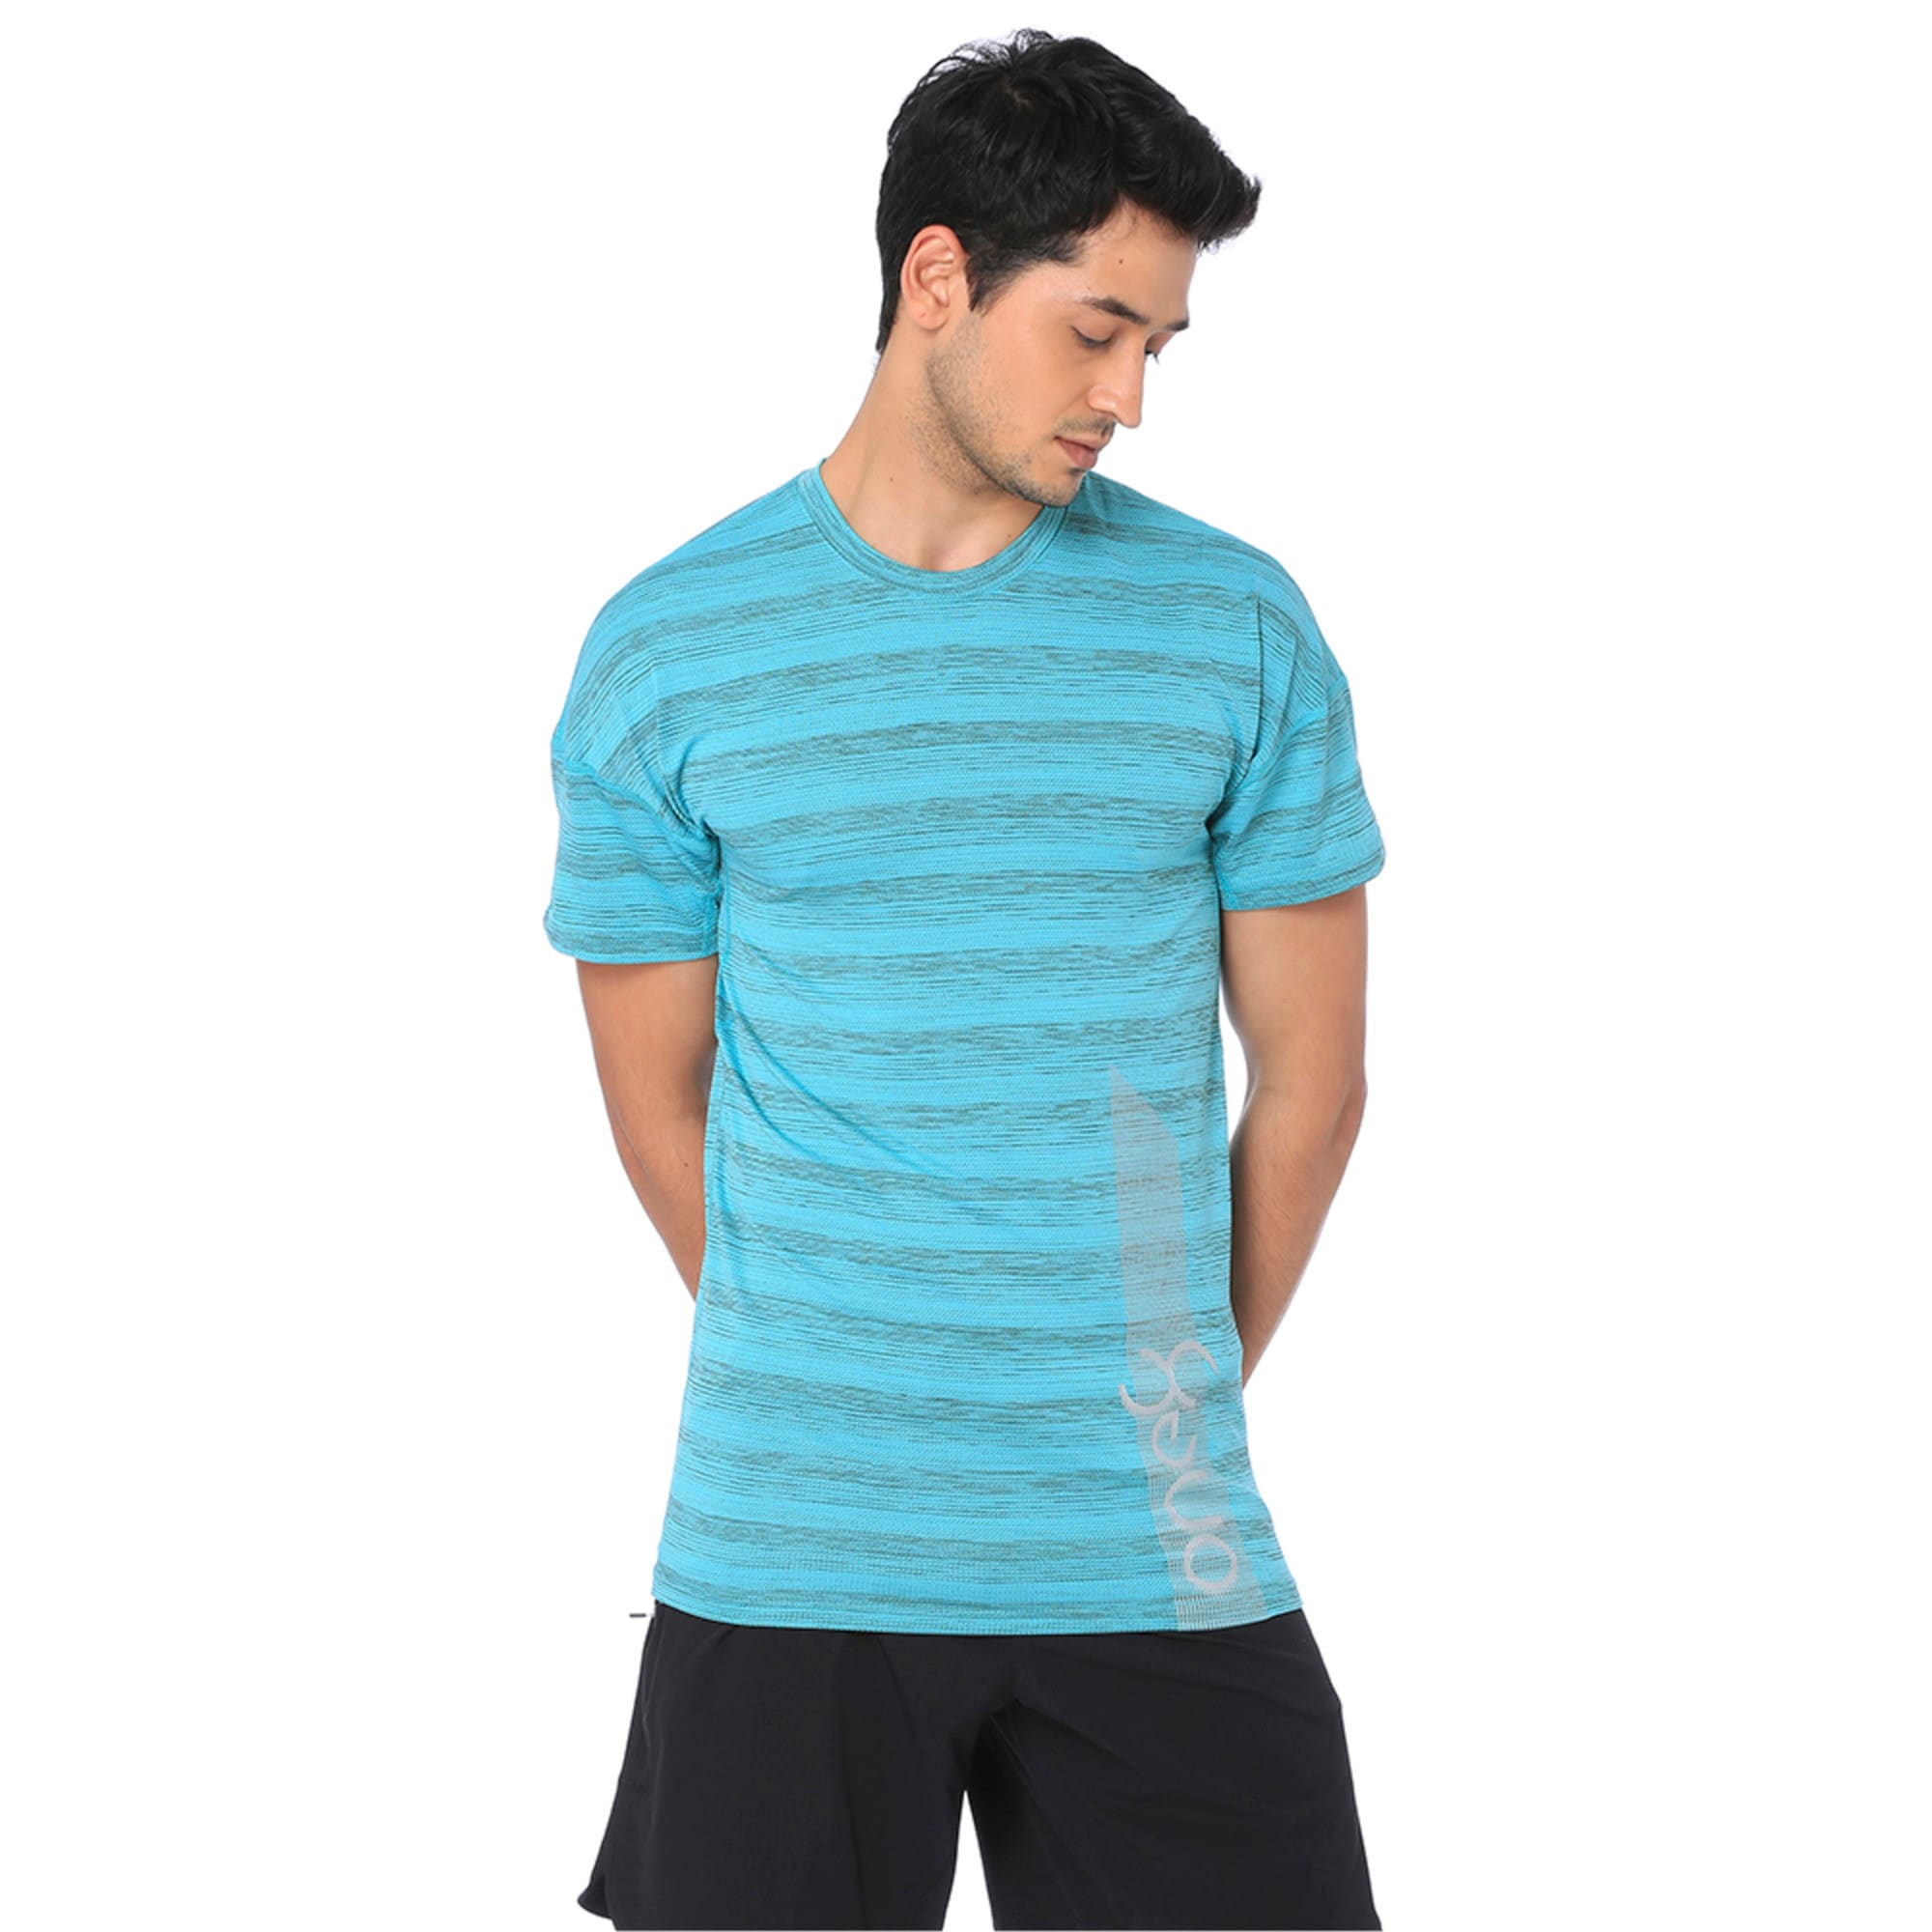 Thumbnail 4 of one8 Active Men's Printed Tee, Blue Turquoise Heather, medium-IND